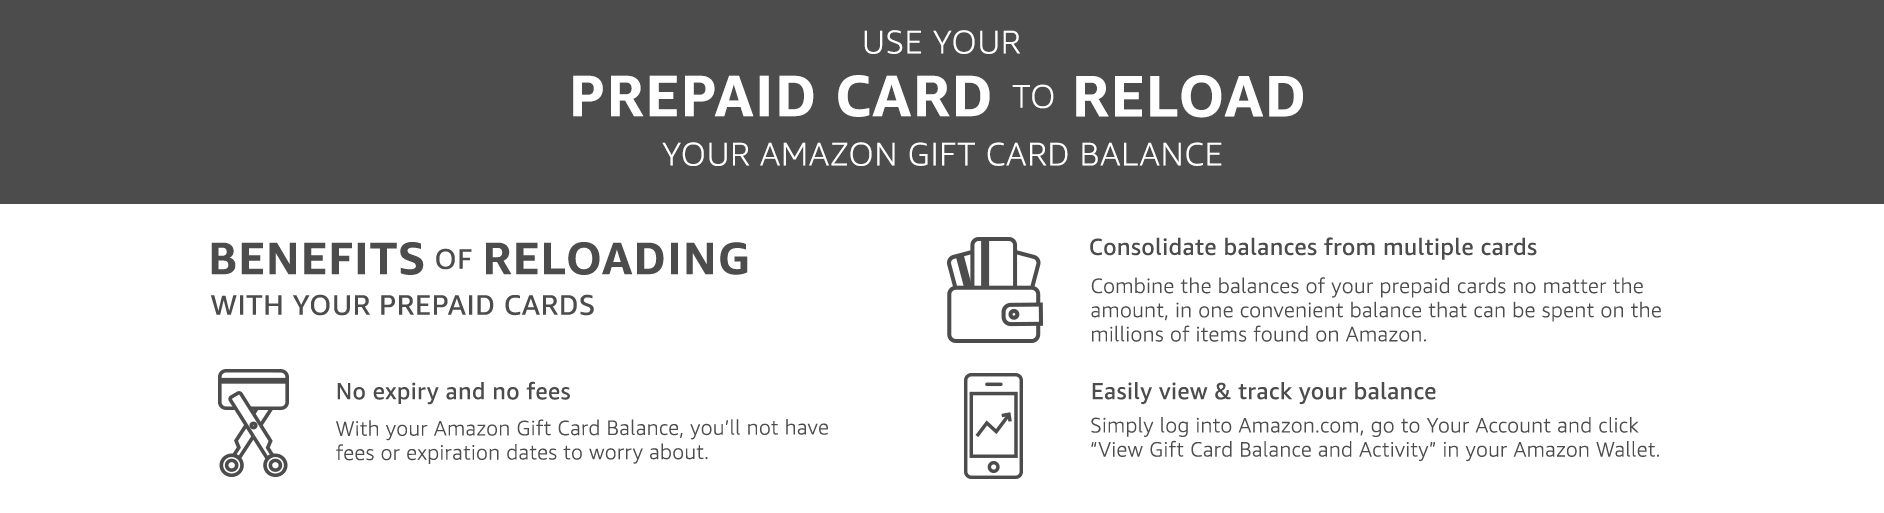 how to use a prepaid gift card on amazon combine vanilla visa gift cards lamoureph blog 3061